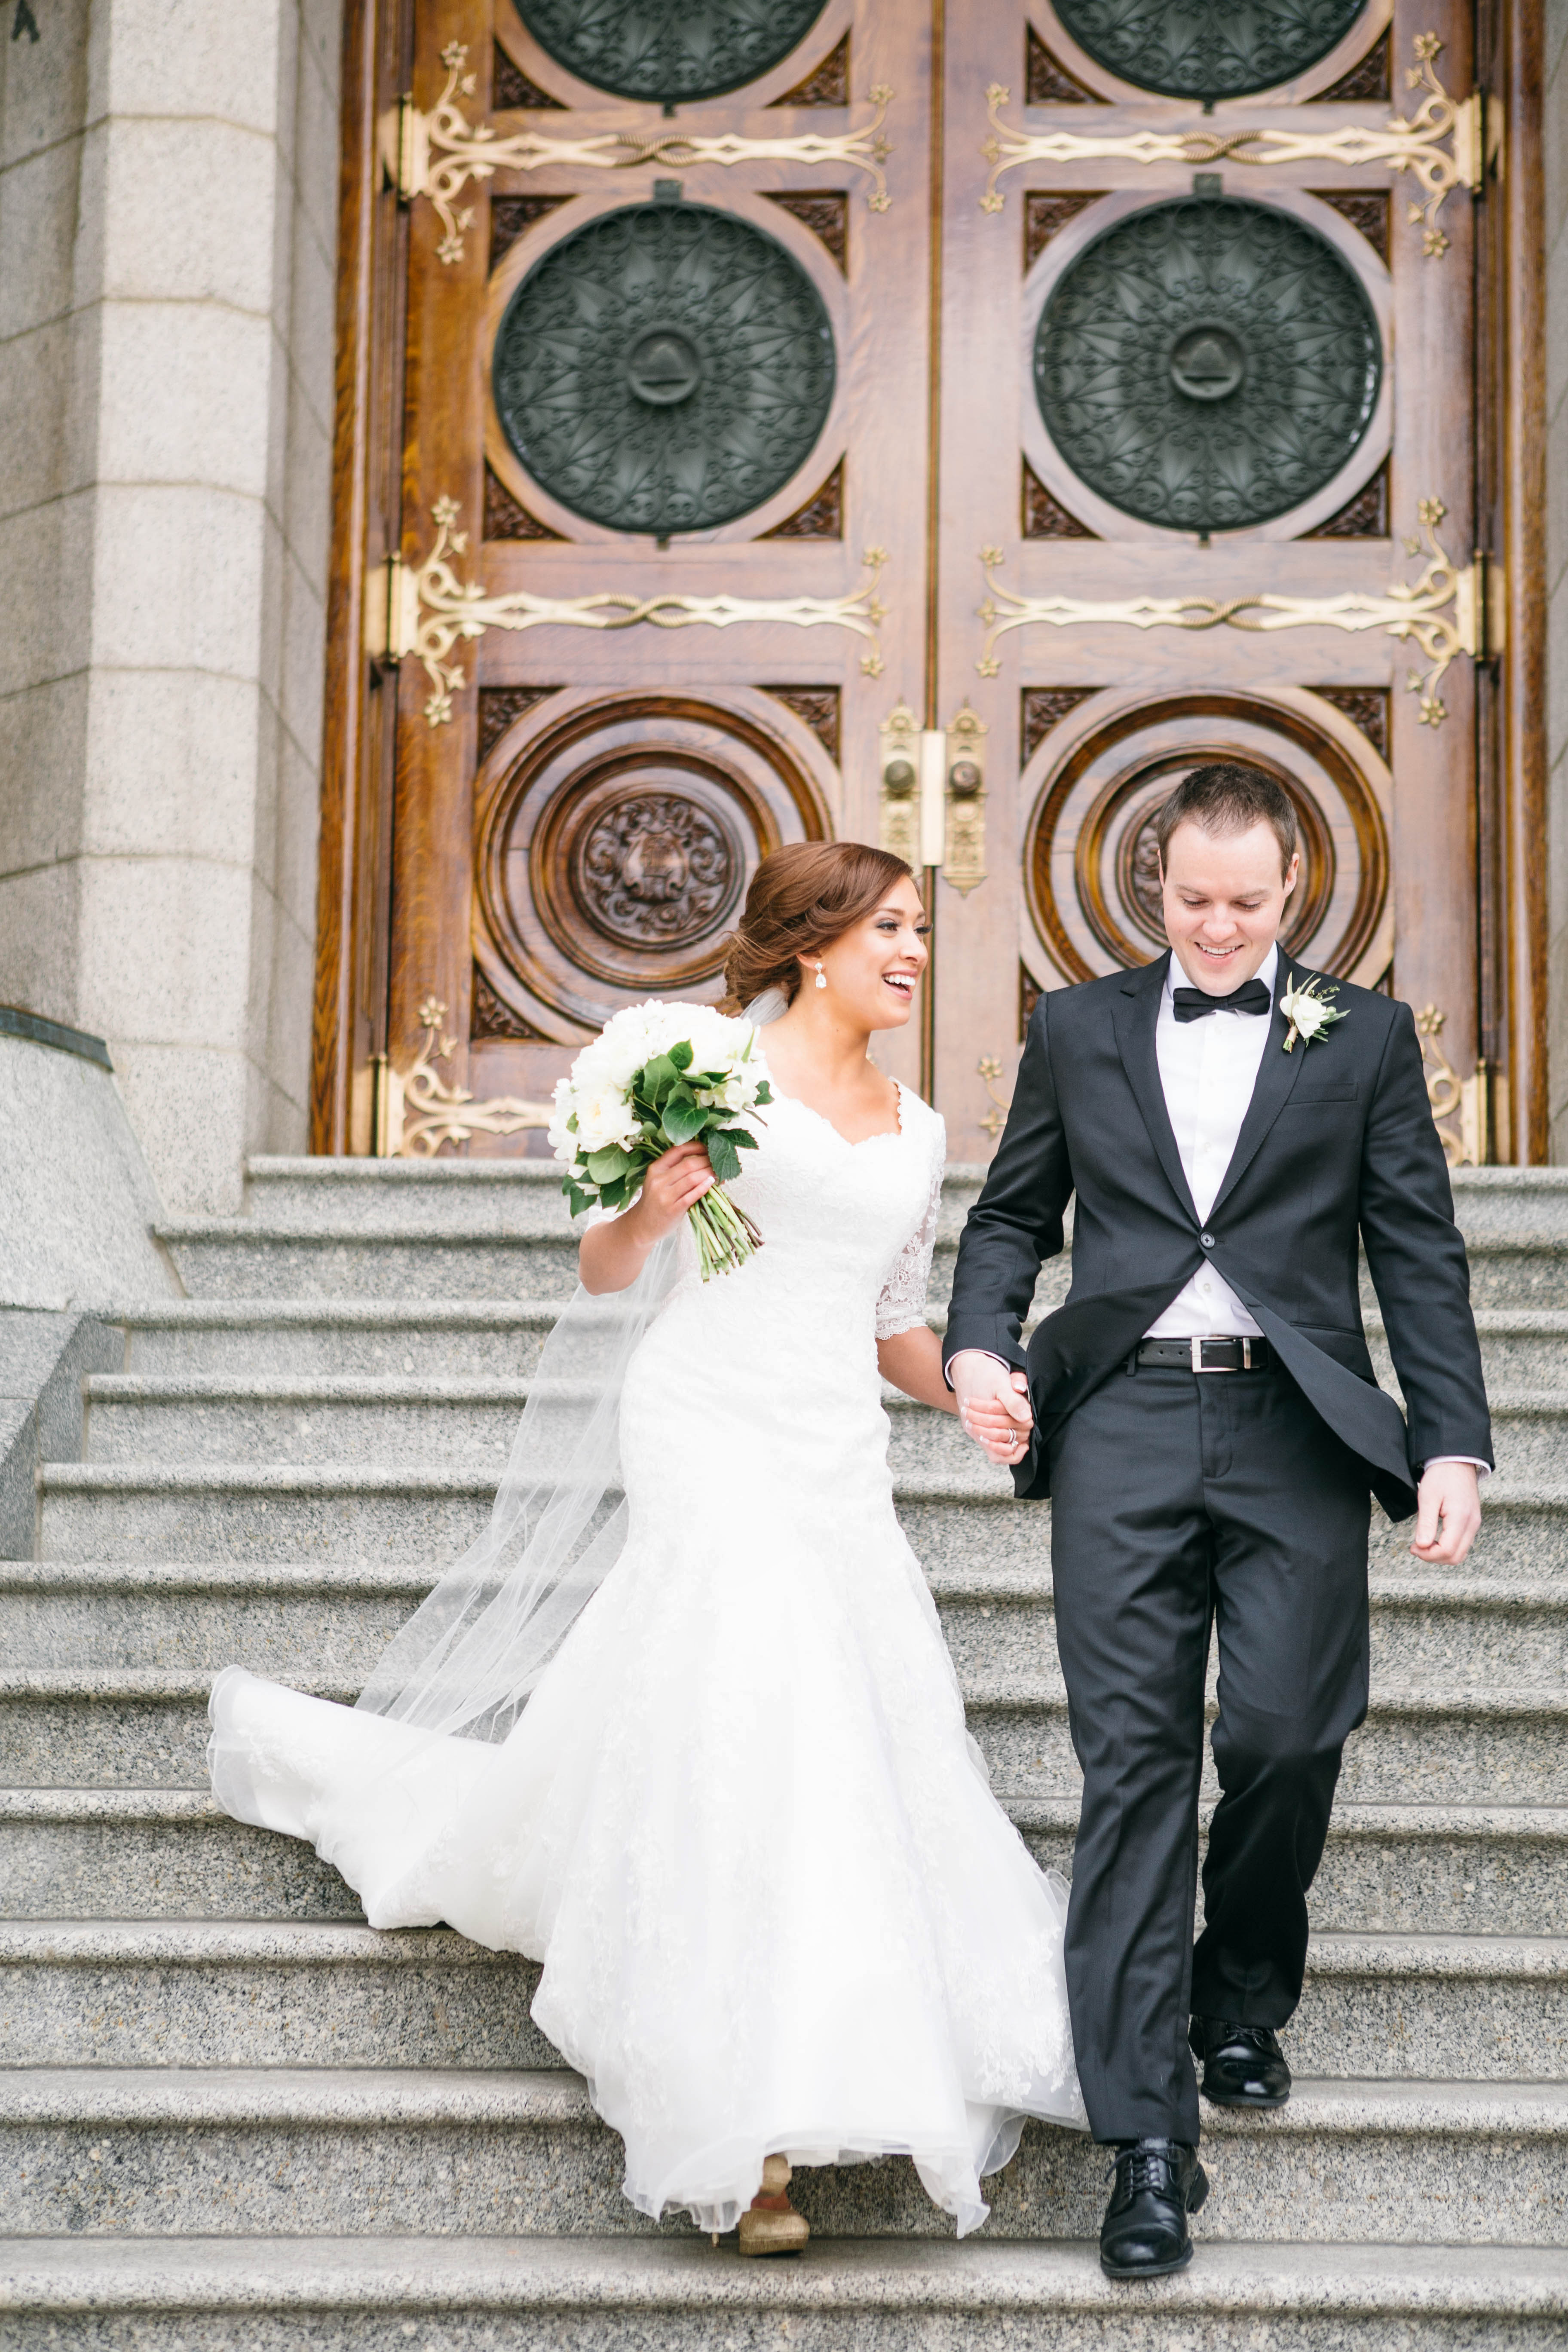 Bridal Gown With Lace Sleeves - Elizabeth Anne Designs: The Wedding Blog